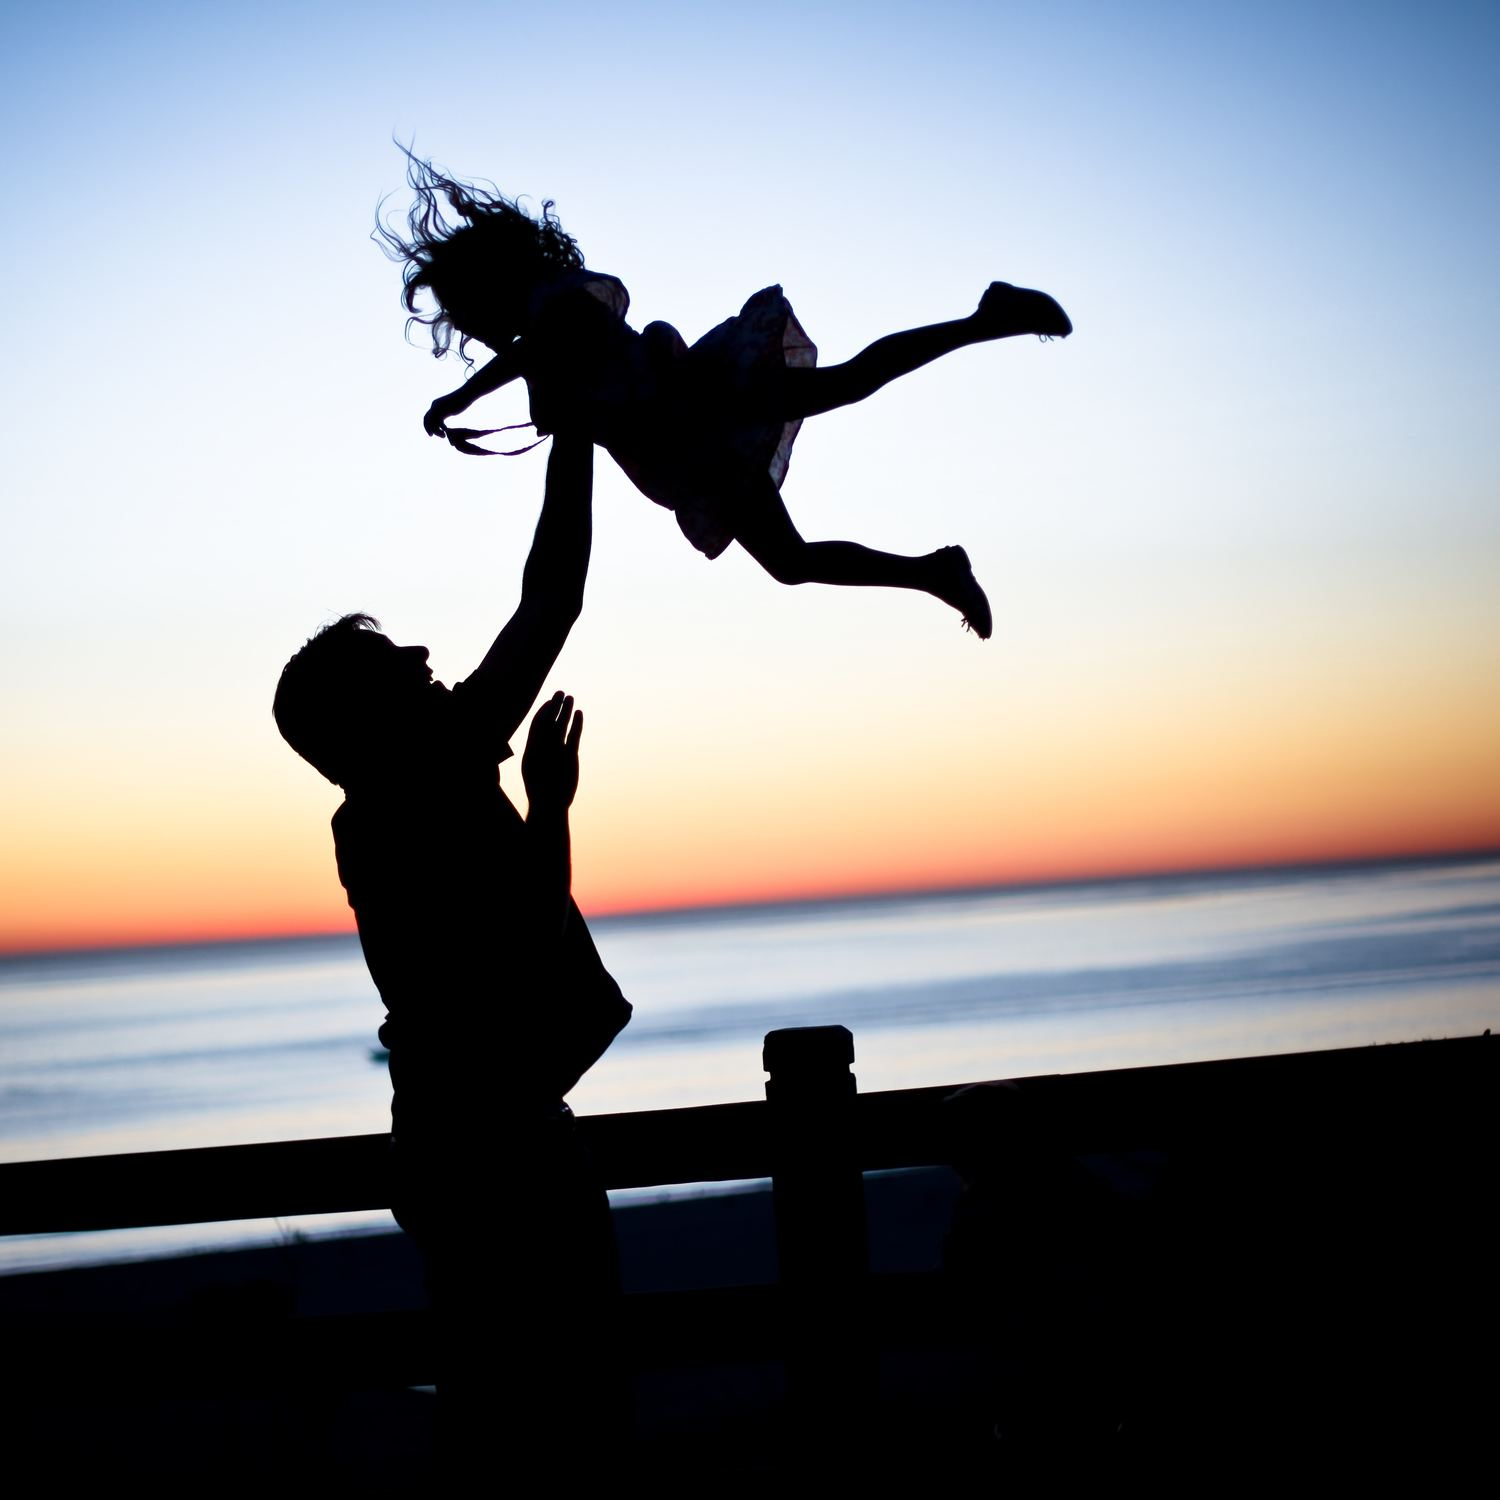 7 things you should know about dad daughter relationship thrive global